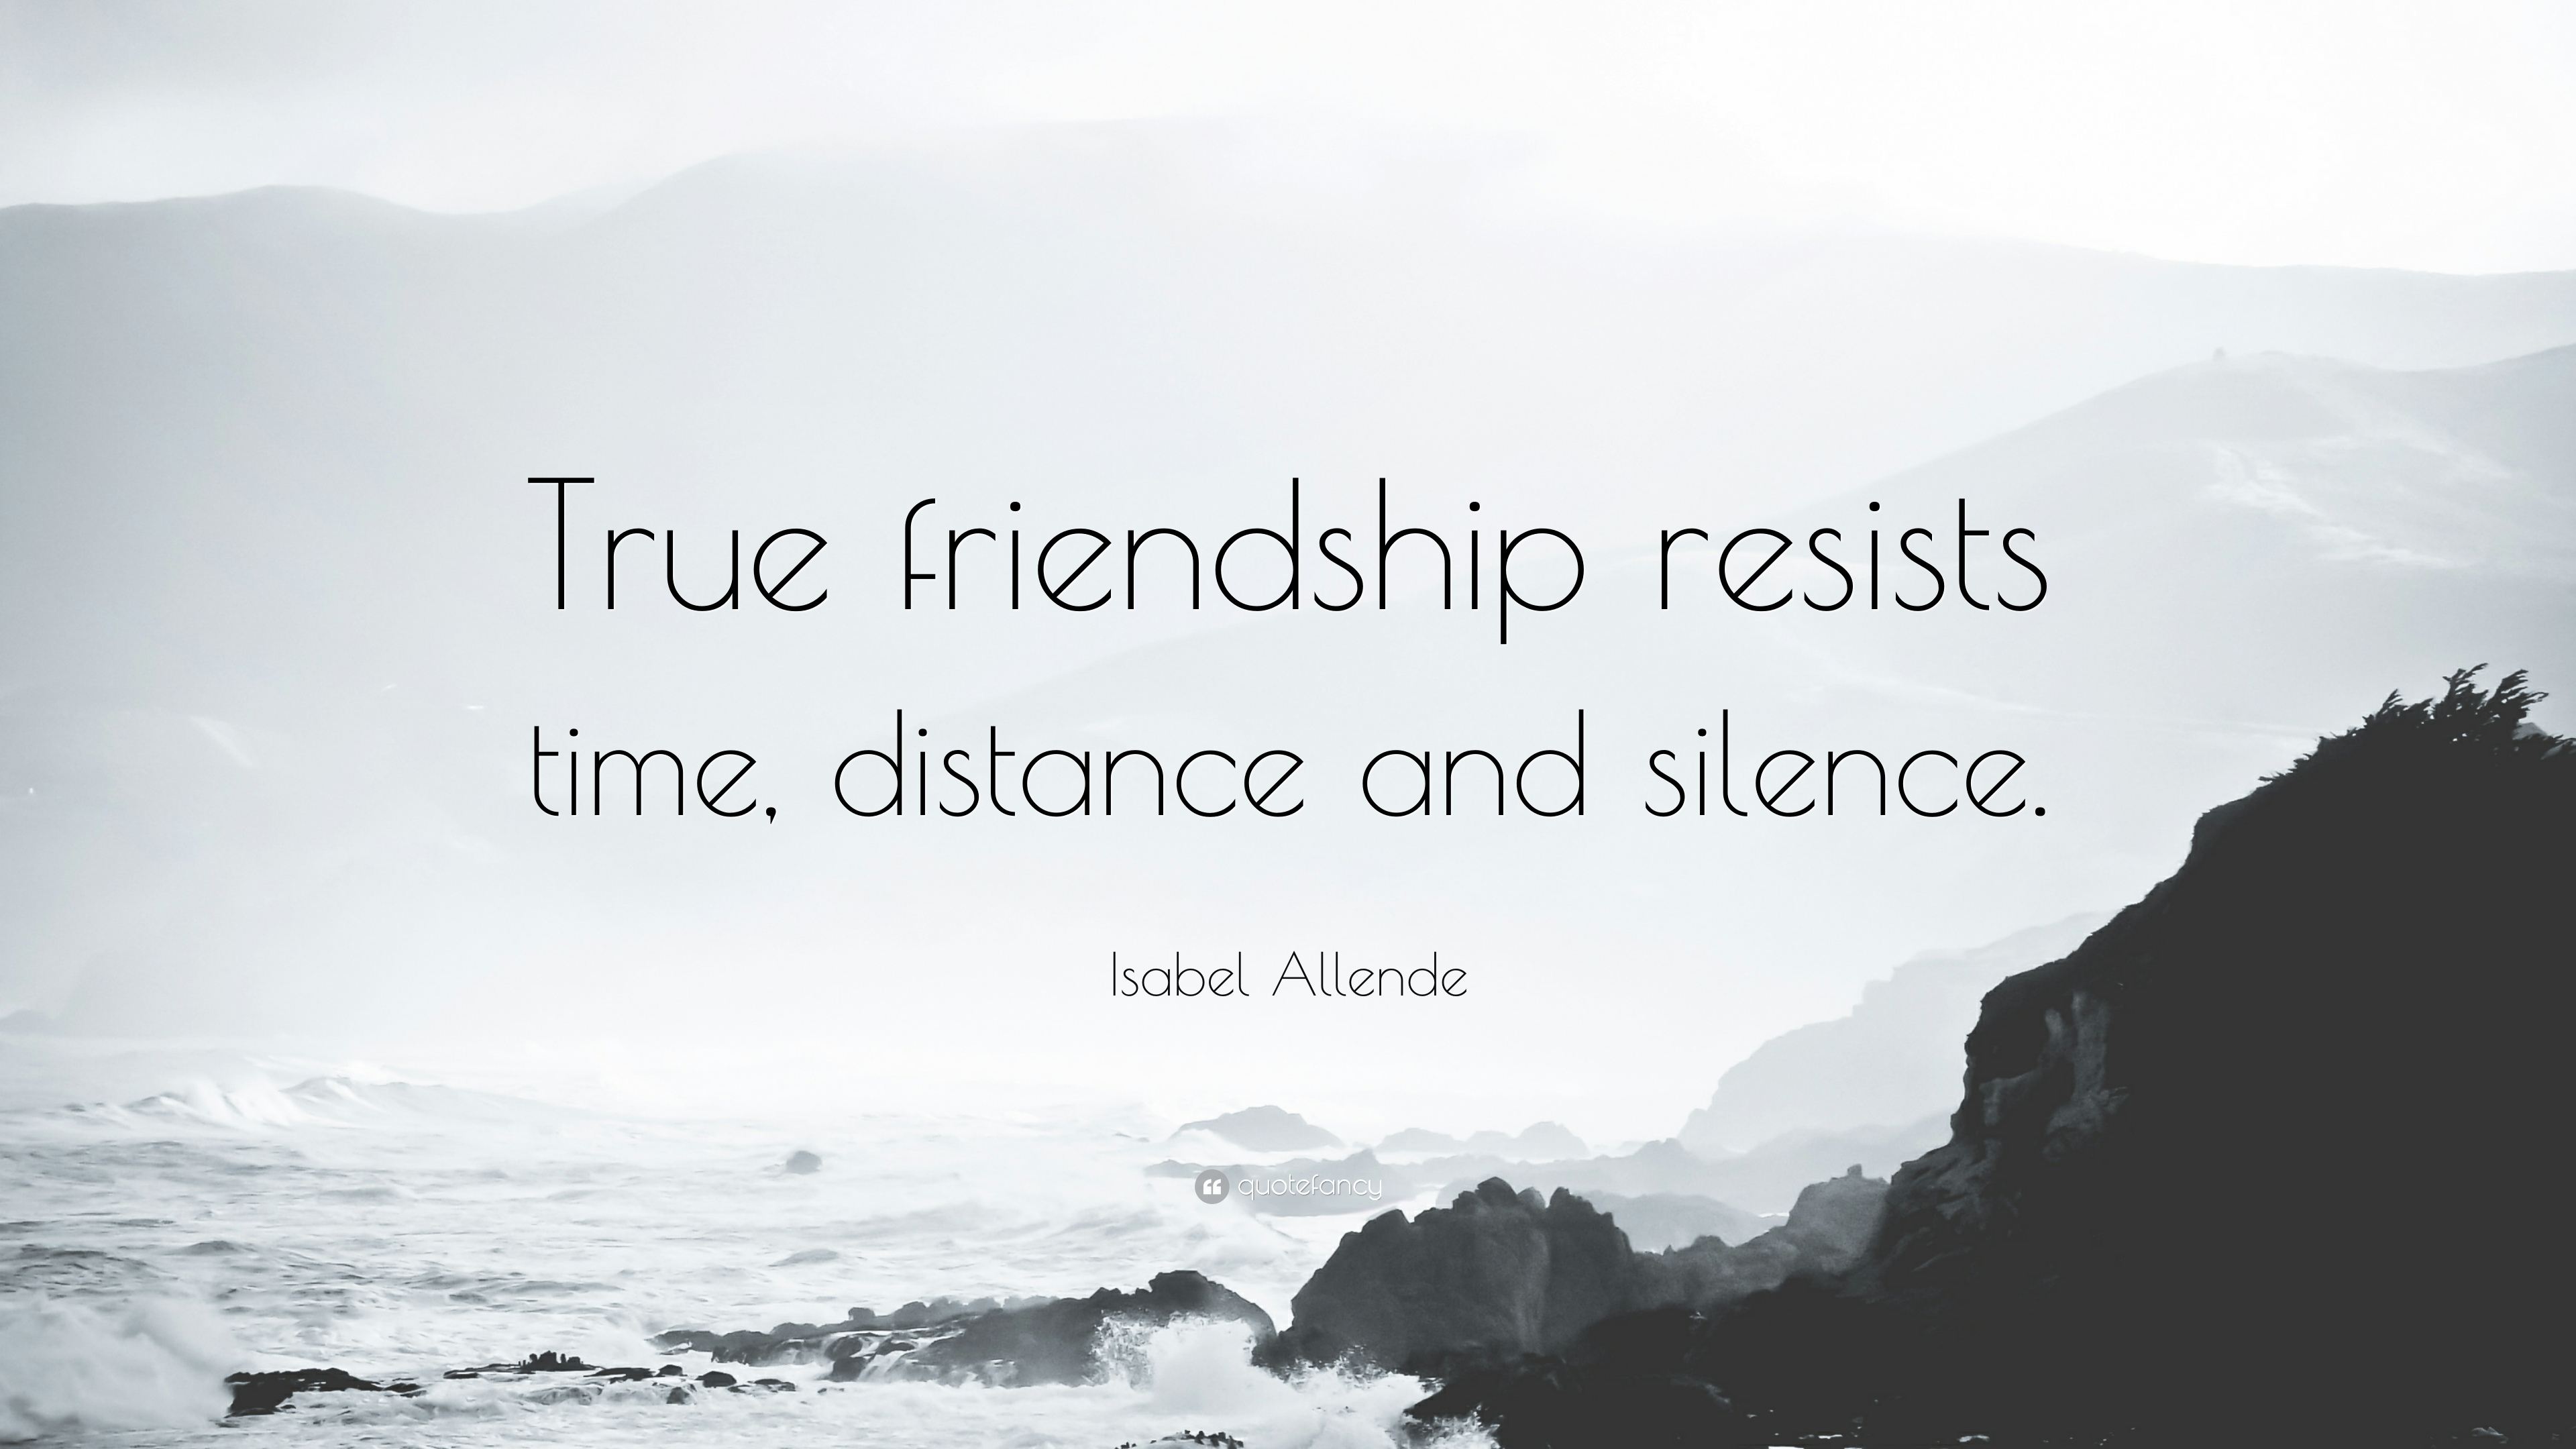 Quotes About Friendships And Distance Friendship Quote Distance Time Wonderful Friendship Distance